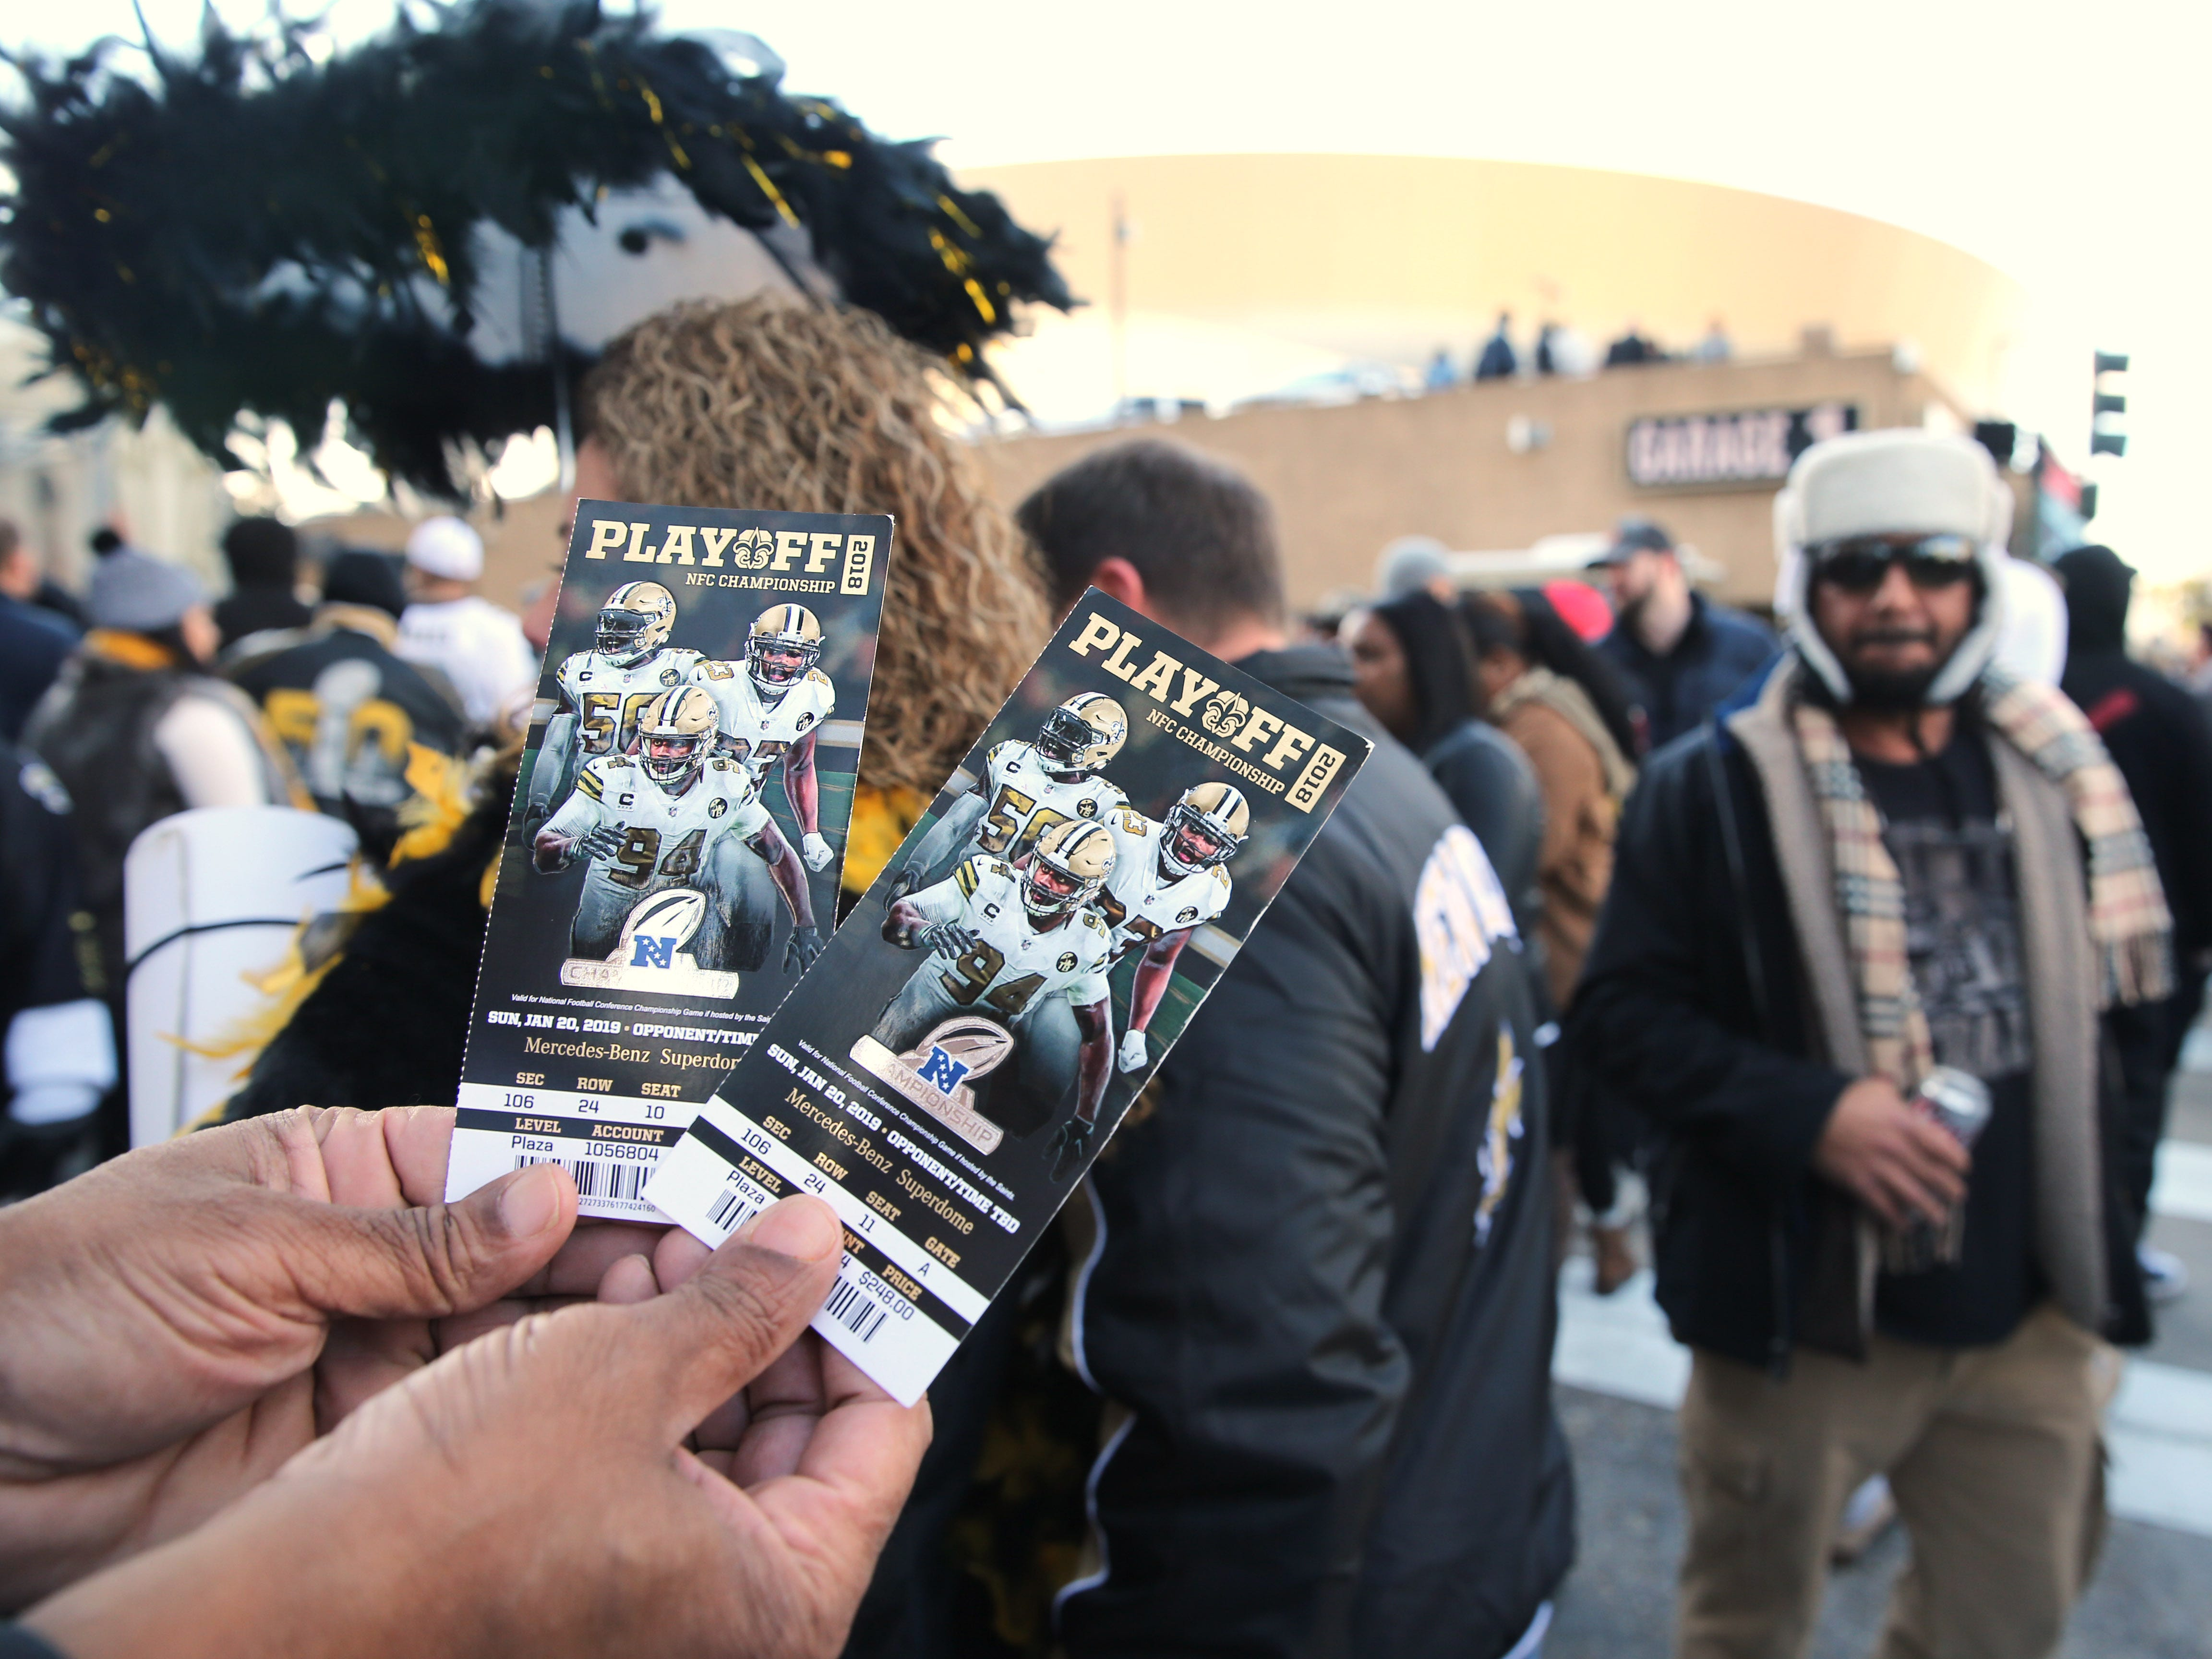 A fan displays tickets for the NFC Championship game between the New Orleans Saints and the Los Angeles Rams at Mercedes-Benz Superdome.